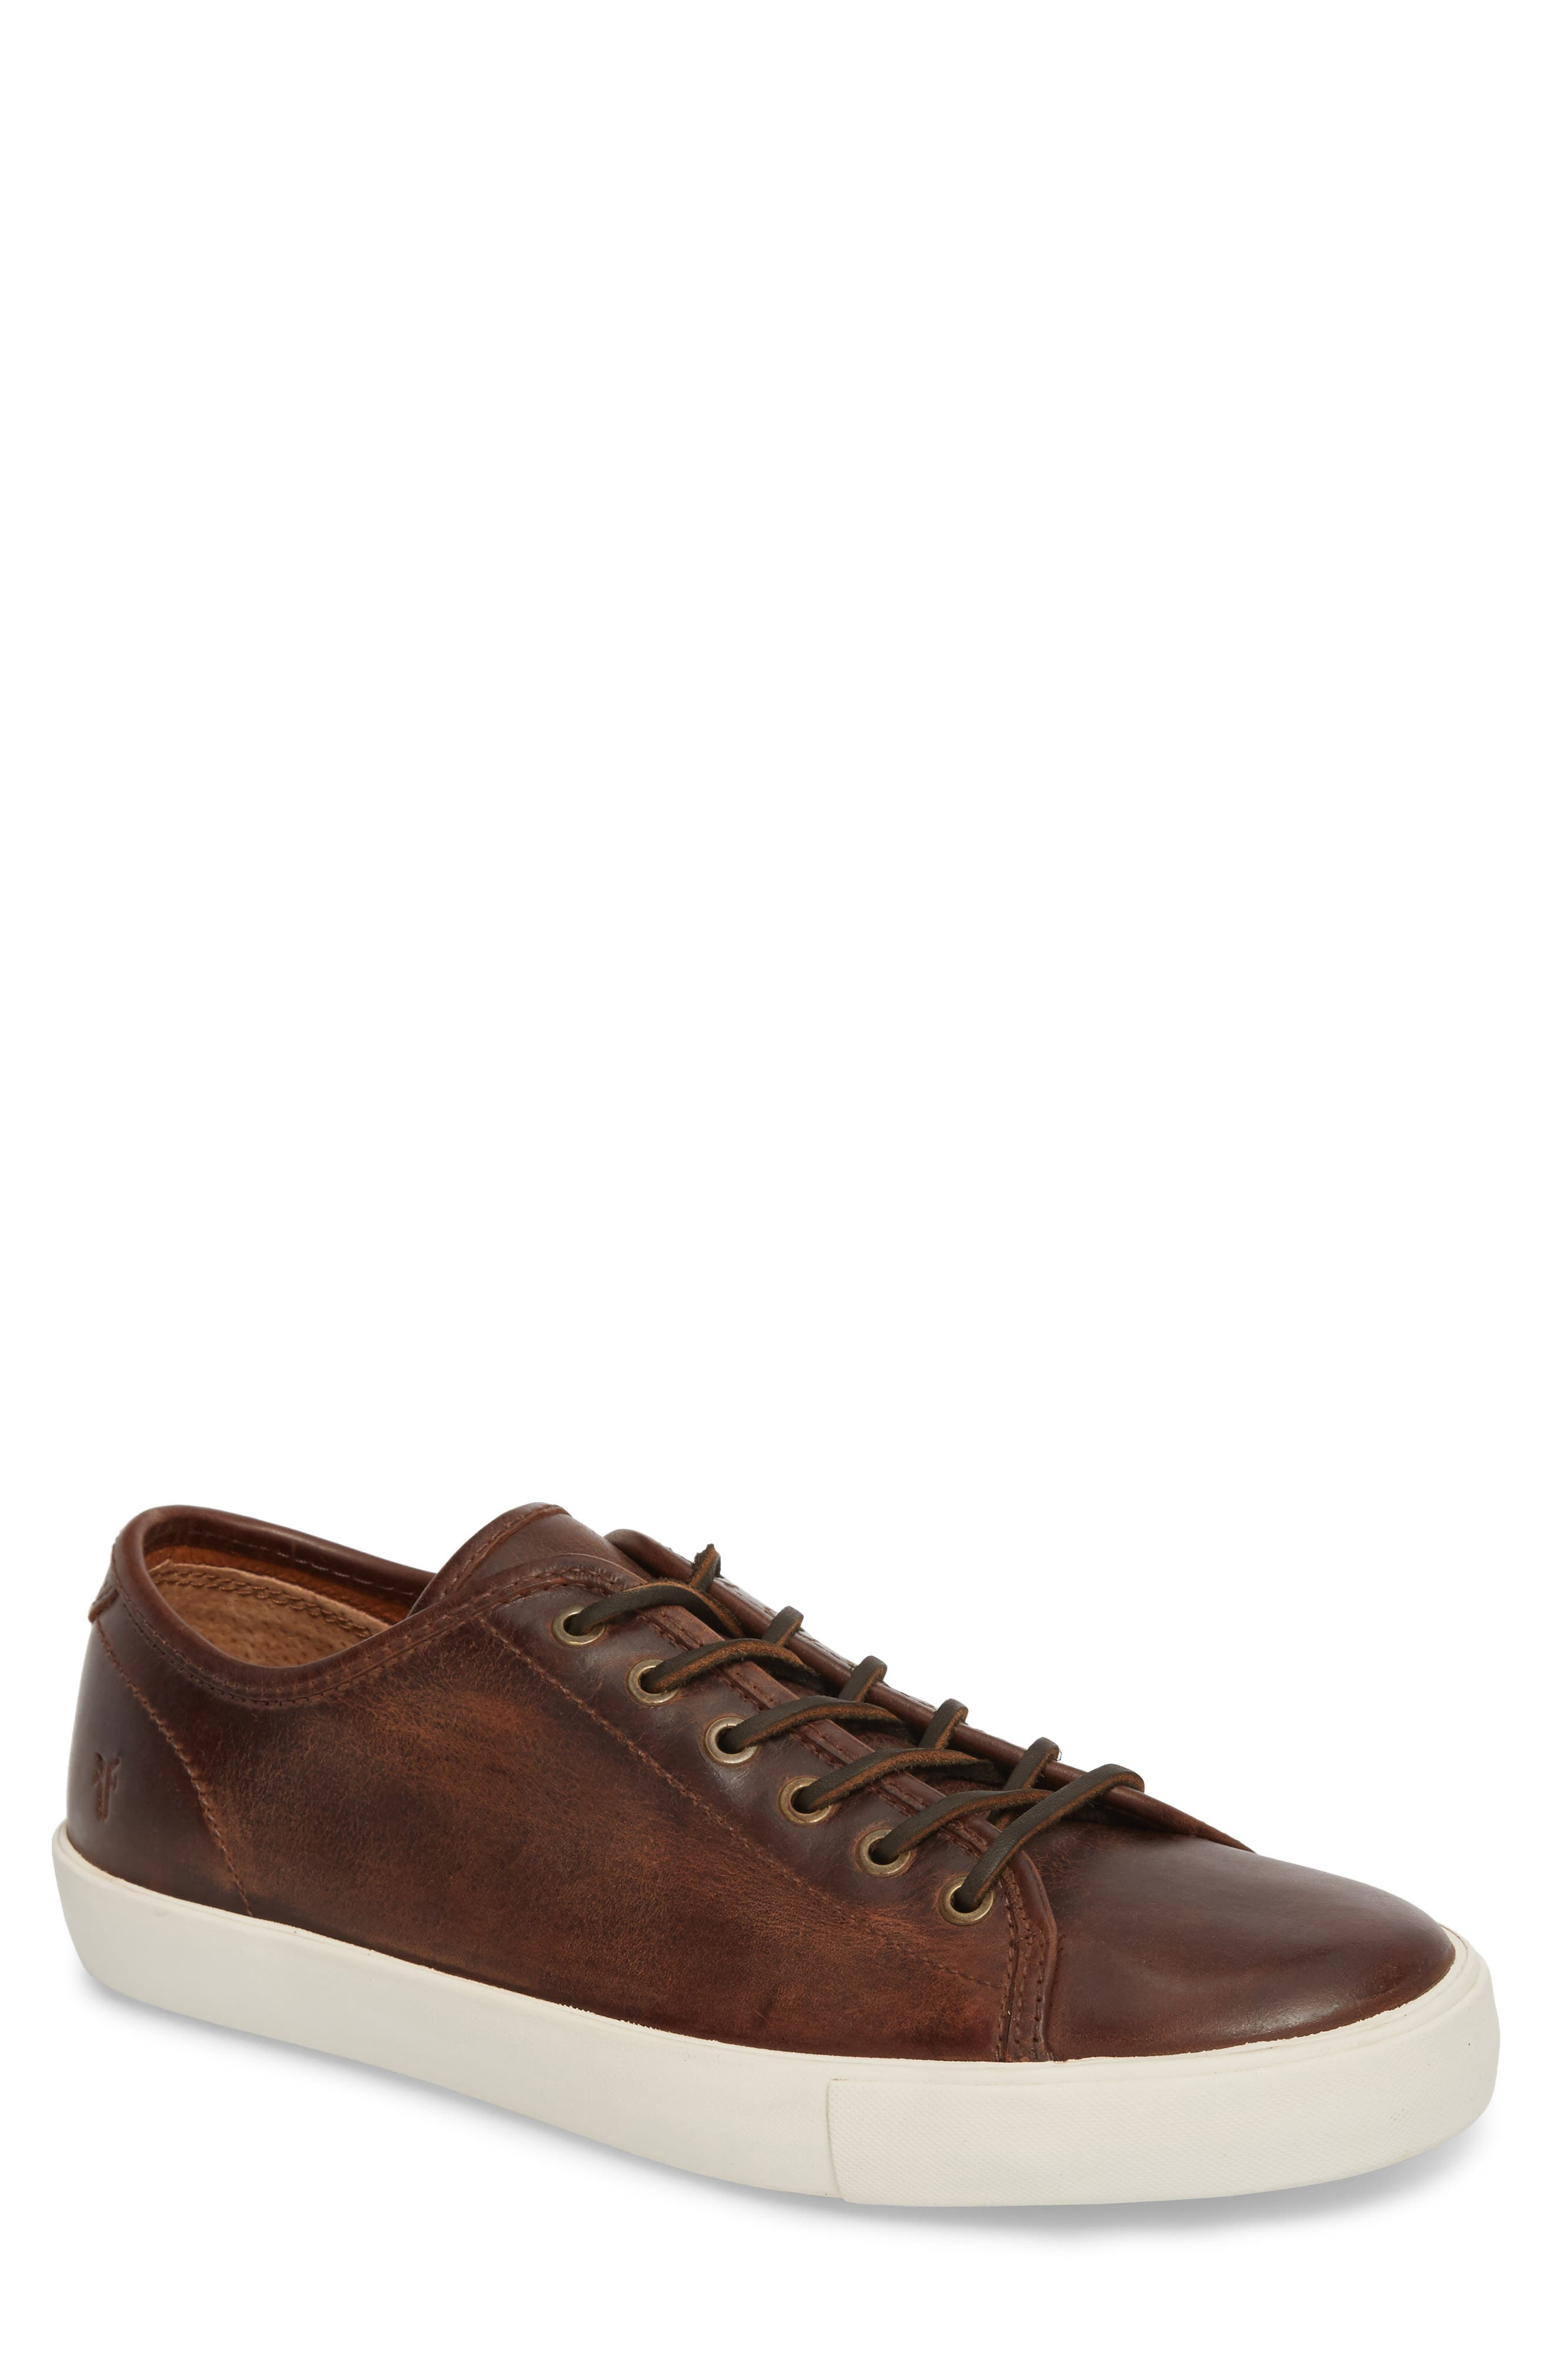 Brett Sneaker,                             Main thumbnail 1, color,                             REDWOOD LEATHER